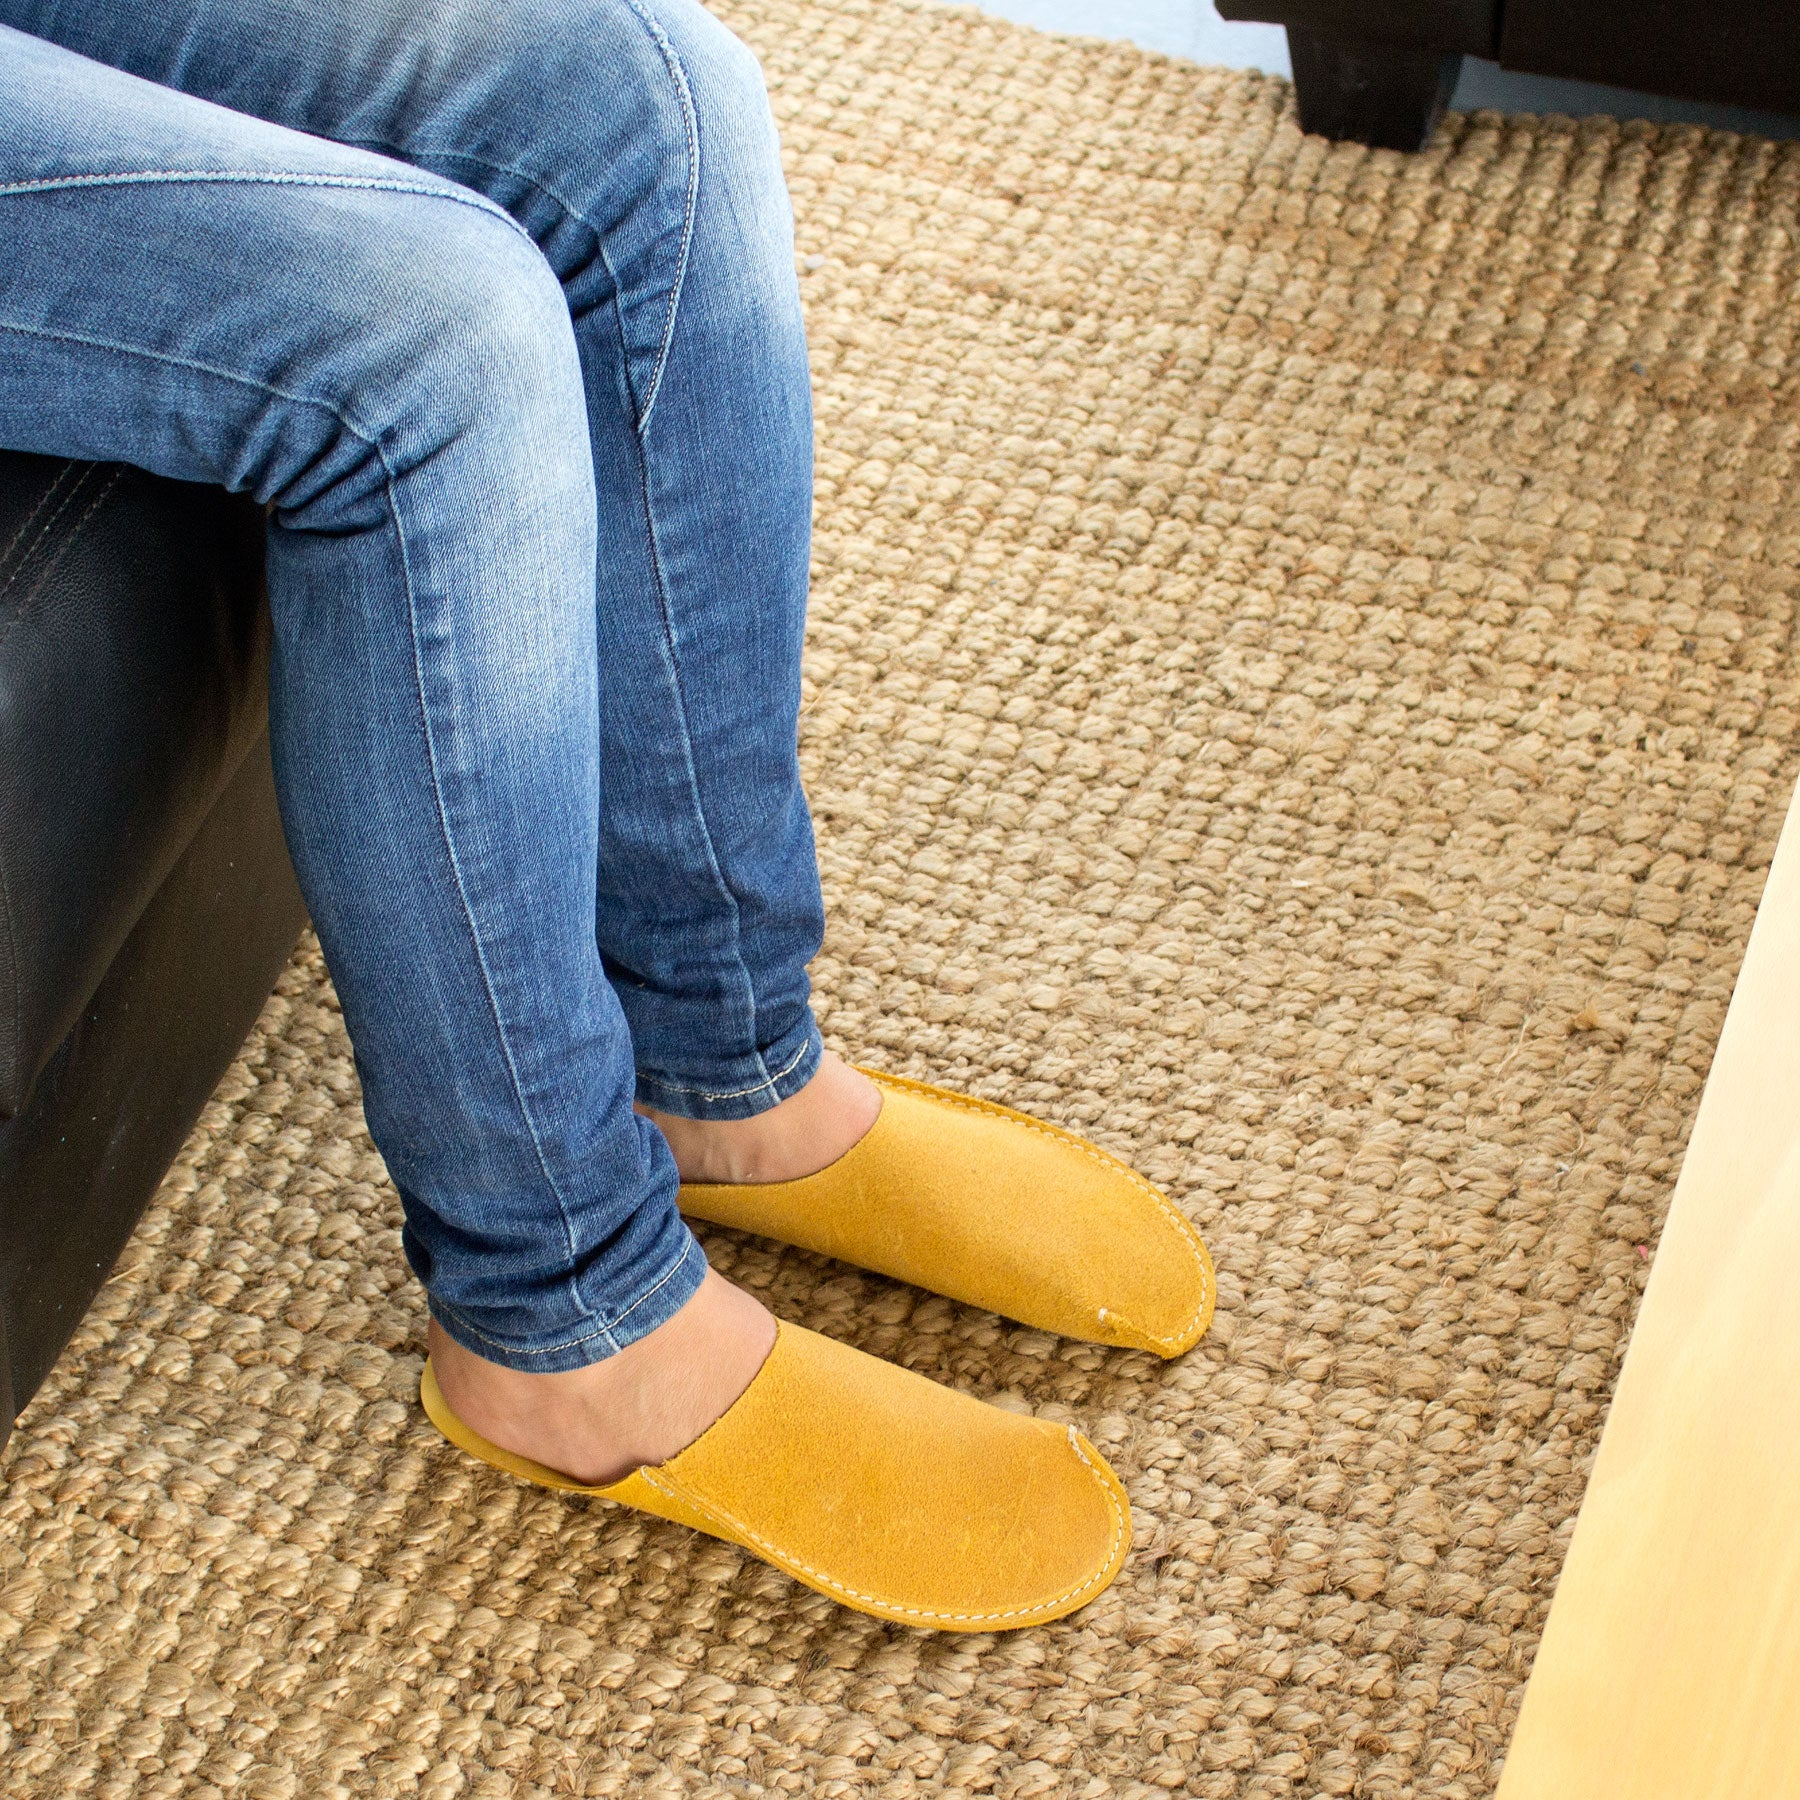 Yellow CP Slippers Minimalist home shoes for man and woman to stay at home